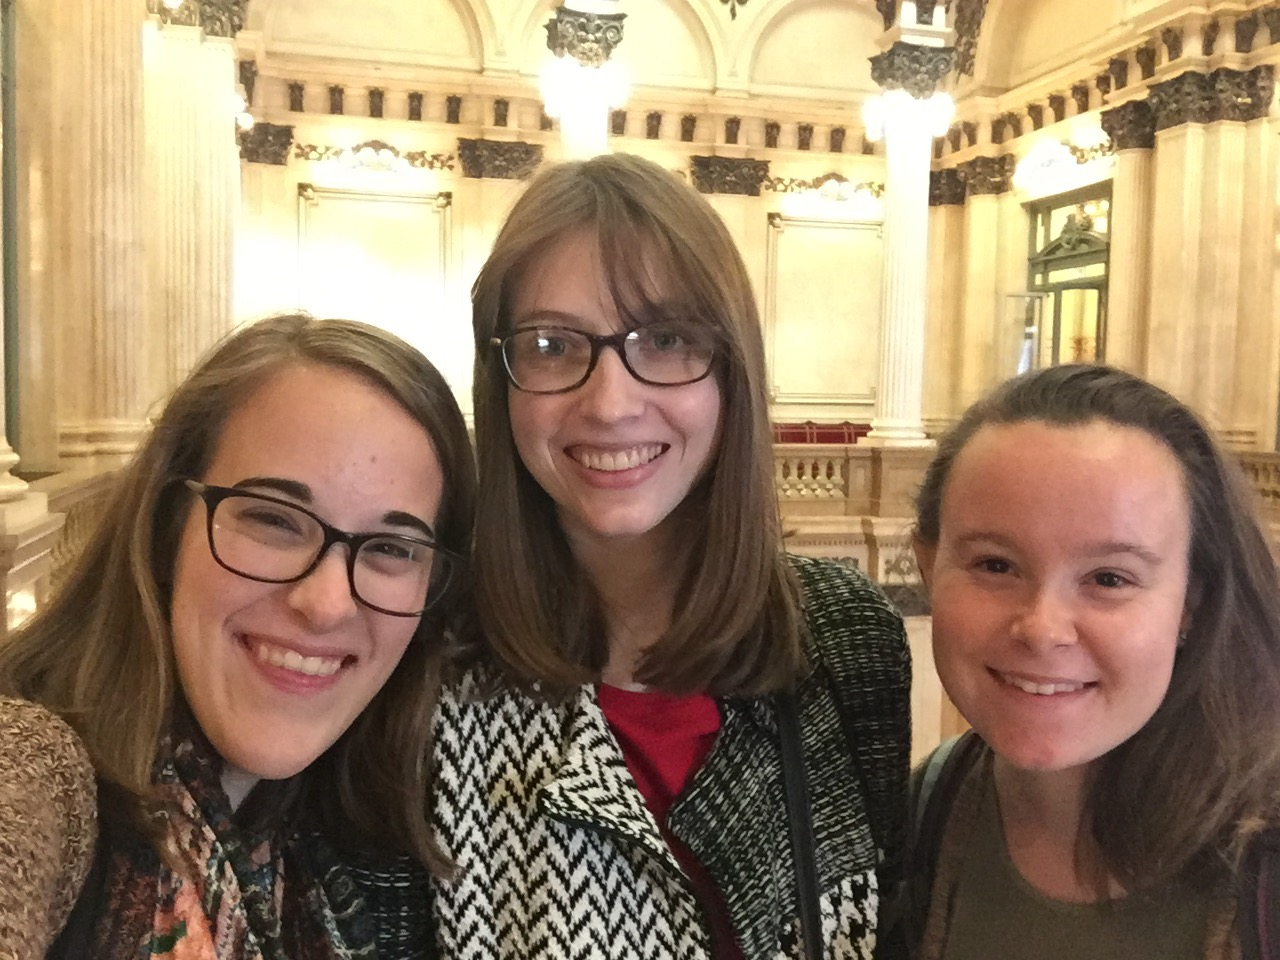 CAPAStudyAbroad_Buenos Aires_Spring2018_From Claire Shrader - Visiting Teatro Colon with Friends